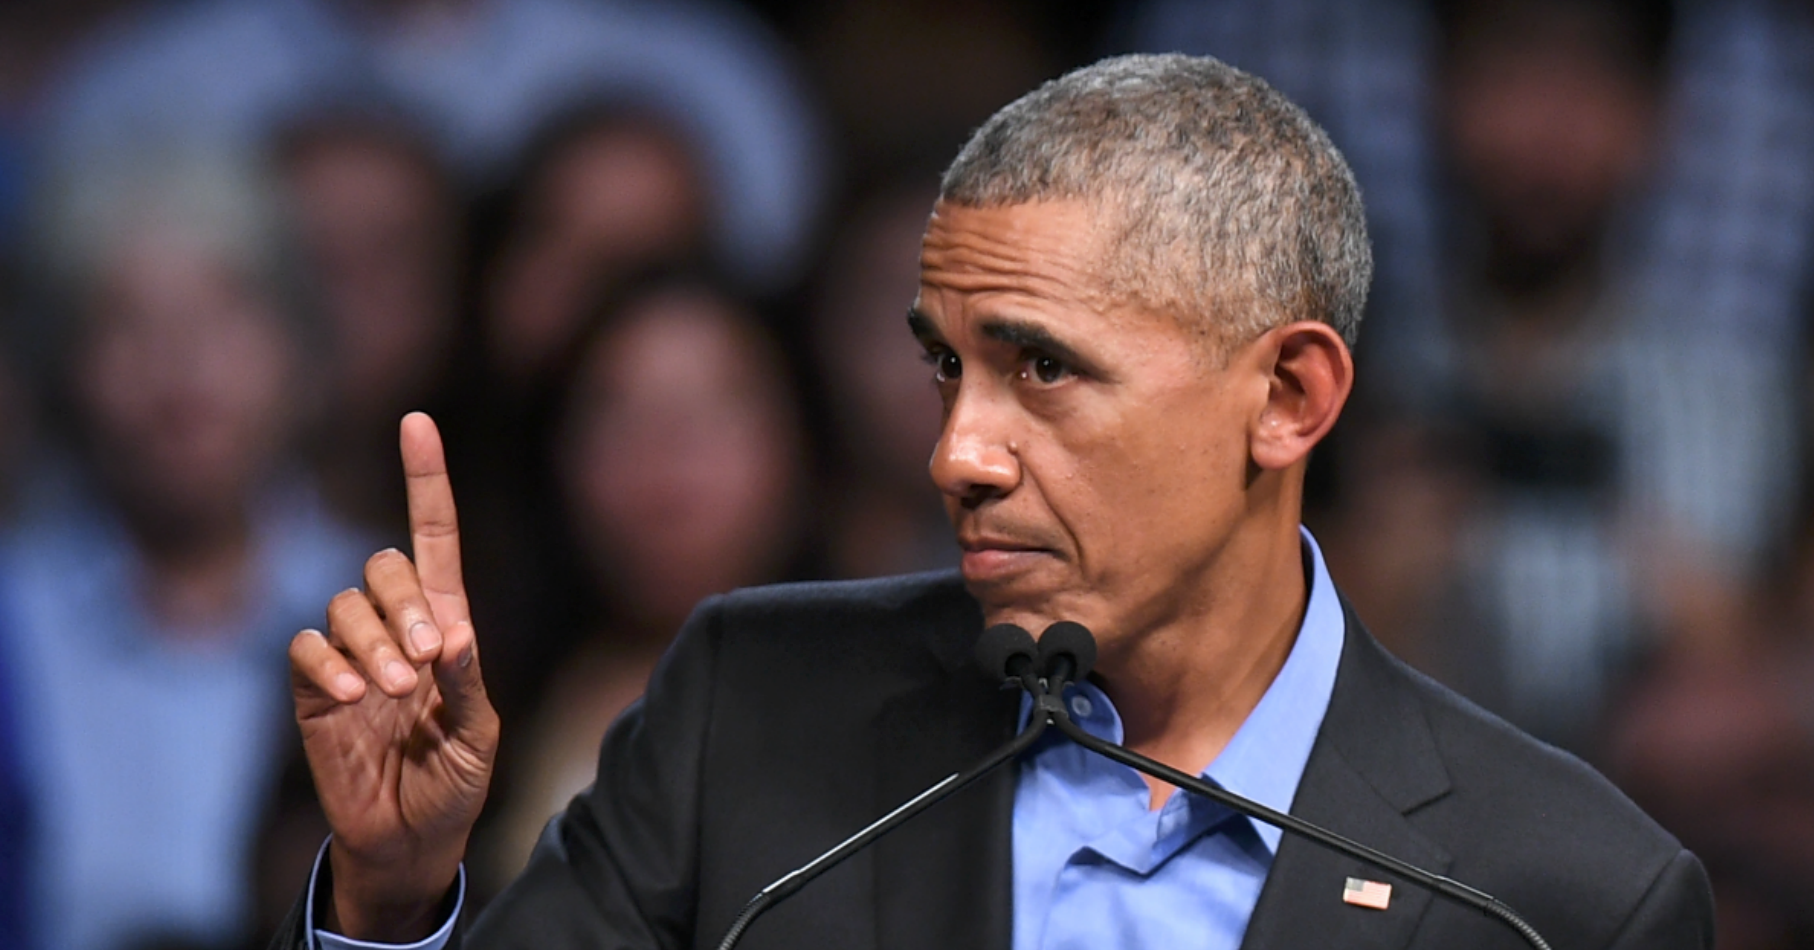 NY Times Reports Obama Only Told 18 Lies During His Entire Presidency